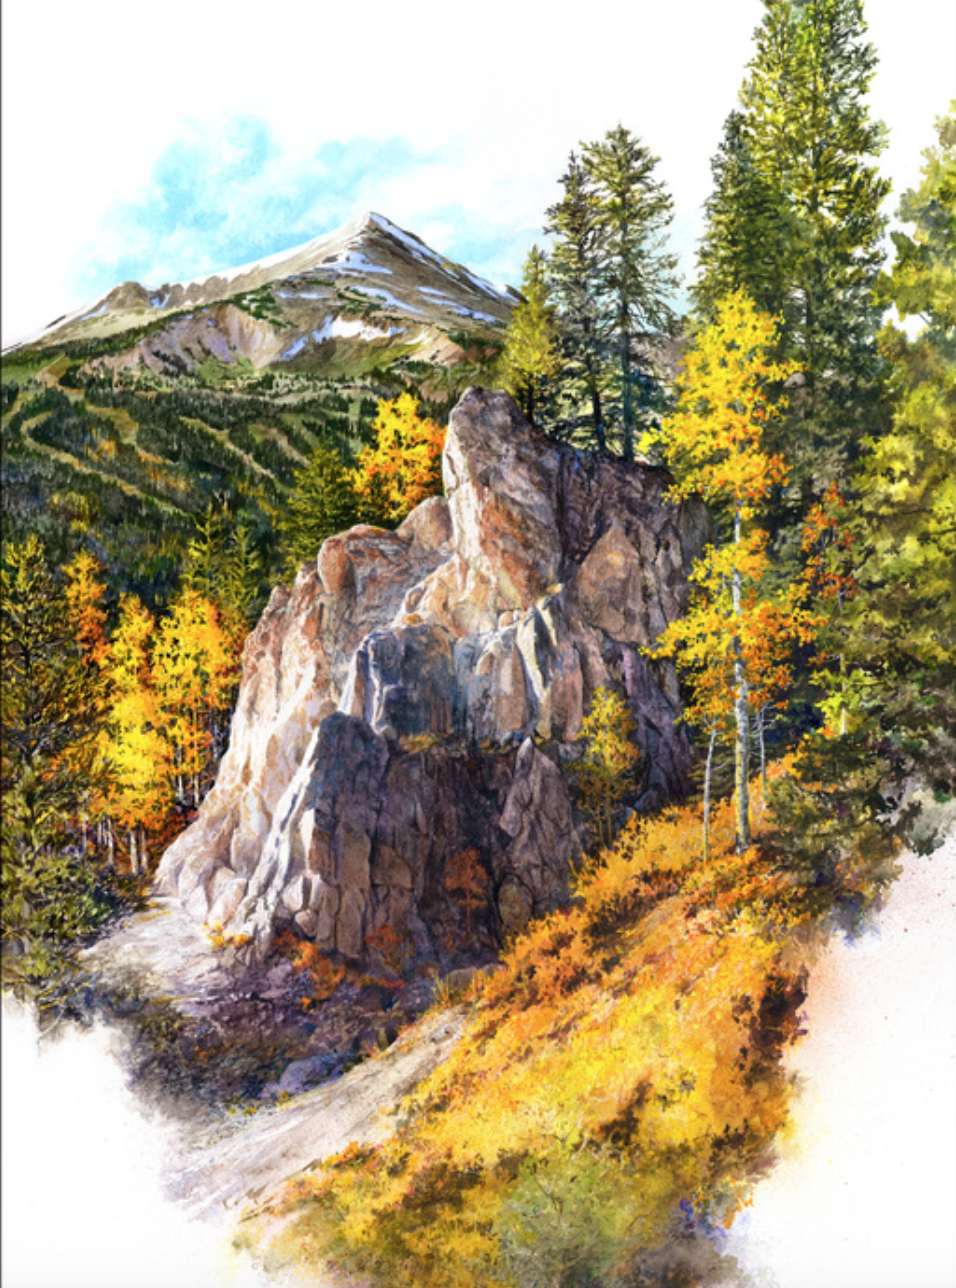 Bruce White - http://brucewhiteartist.comWatercolor/Water Media on Aquabord-Dramatic compositions, negative spaces & textural techniques are employed in these representational interpretations of landscapes & cityscapes from around the world.